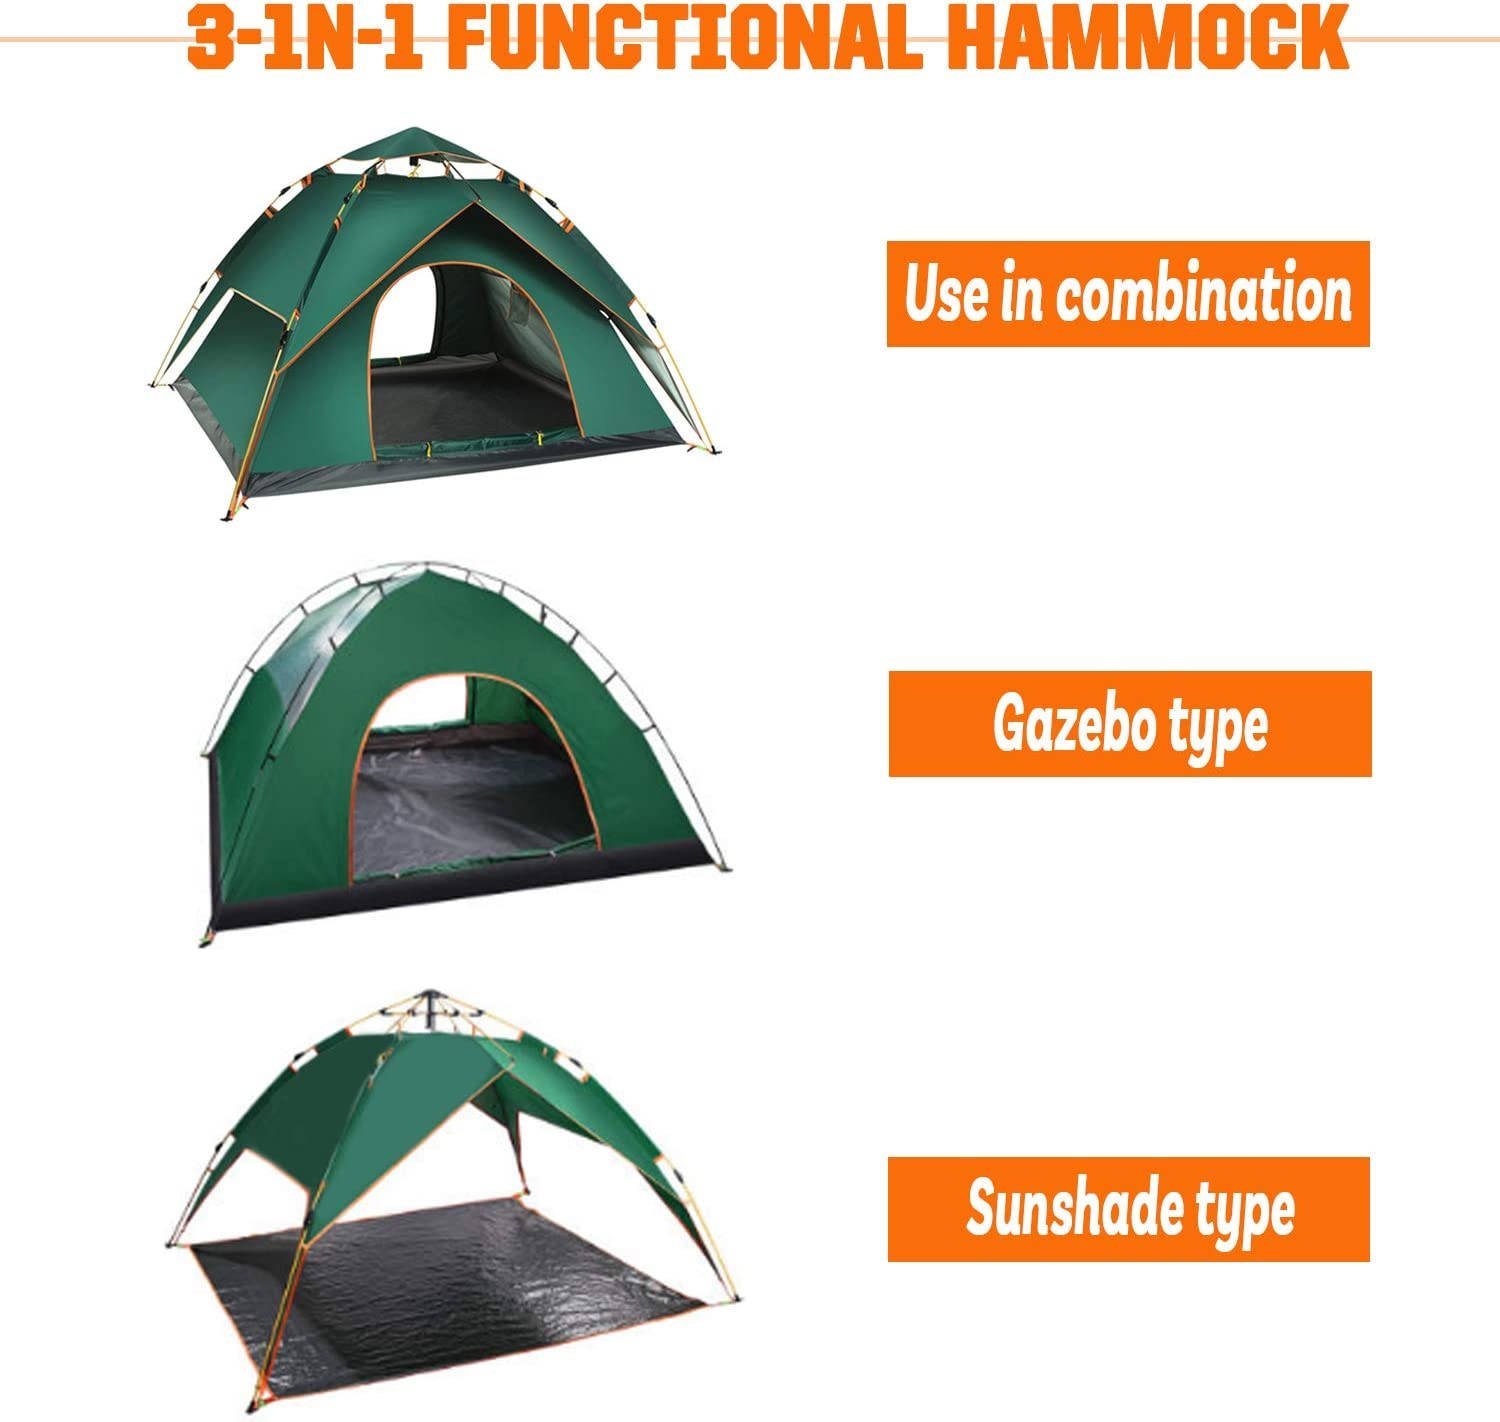 OHMU Outdoor Camping Tent,Family Durable Waterproof Camping Tents Easy Set up Tent Sun Shade 4-5 Person